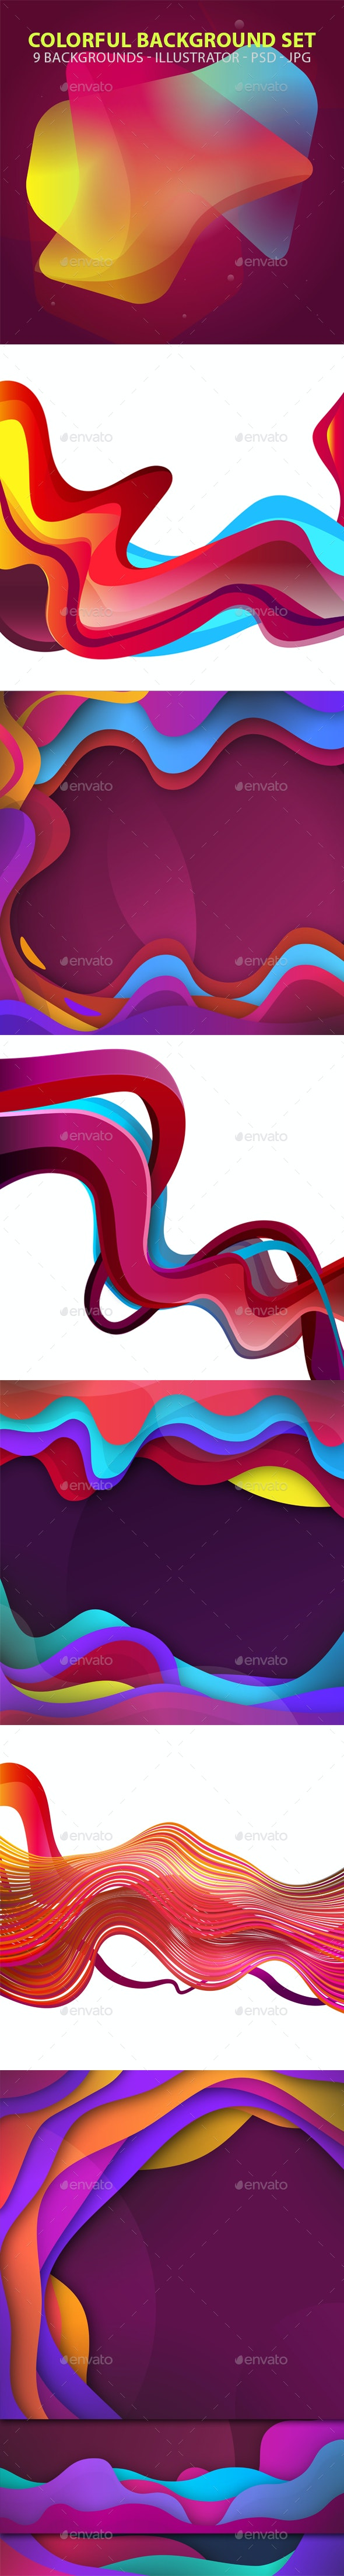 Colorful Backgrounds Set - Abstract Backgrounds